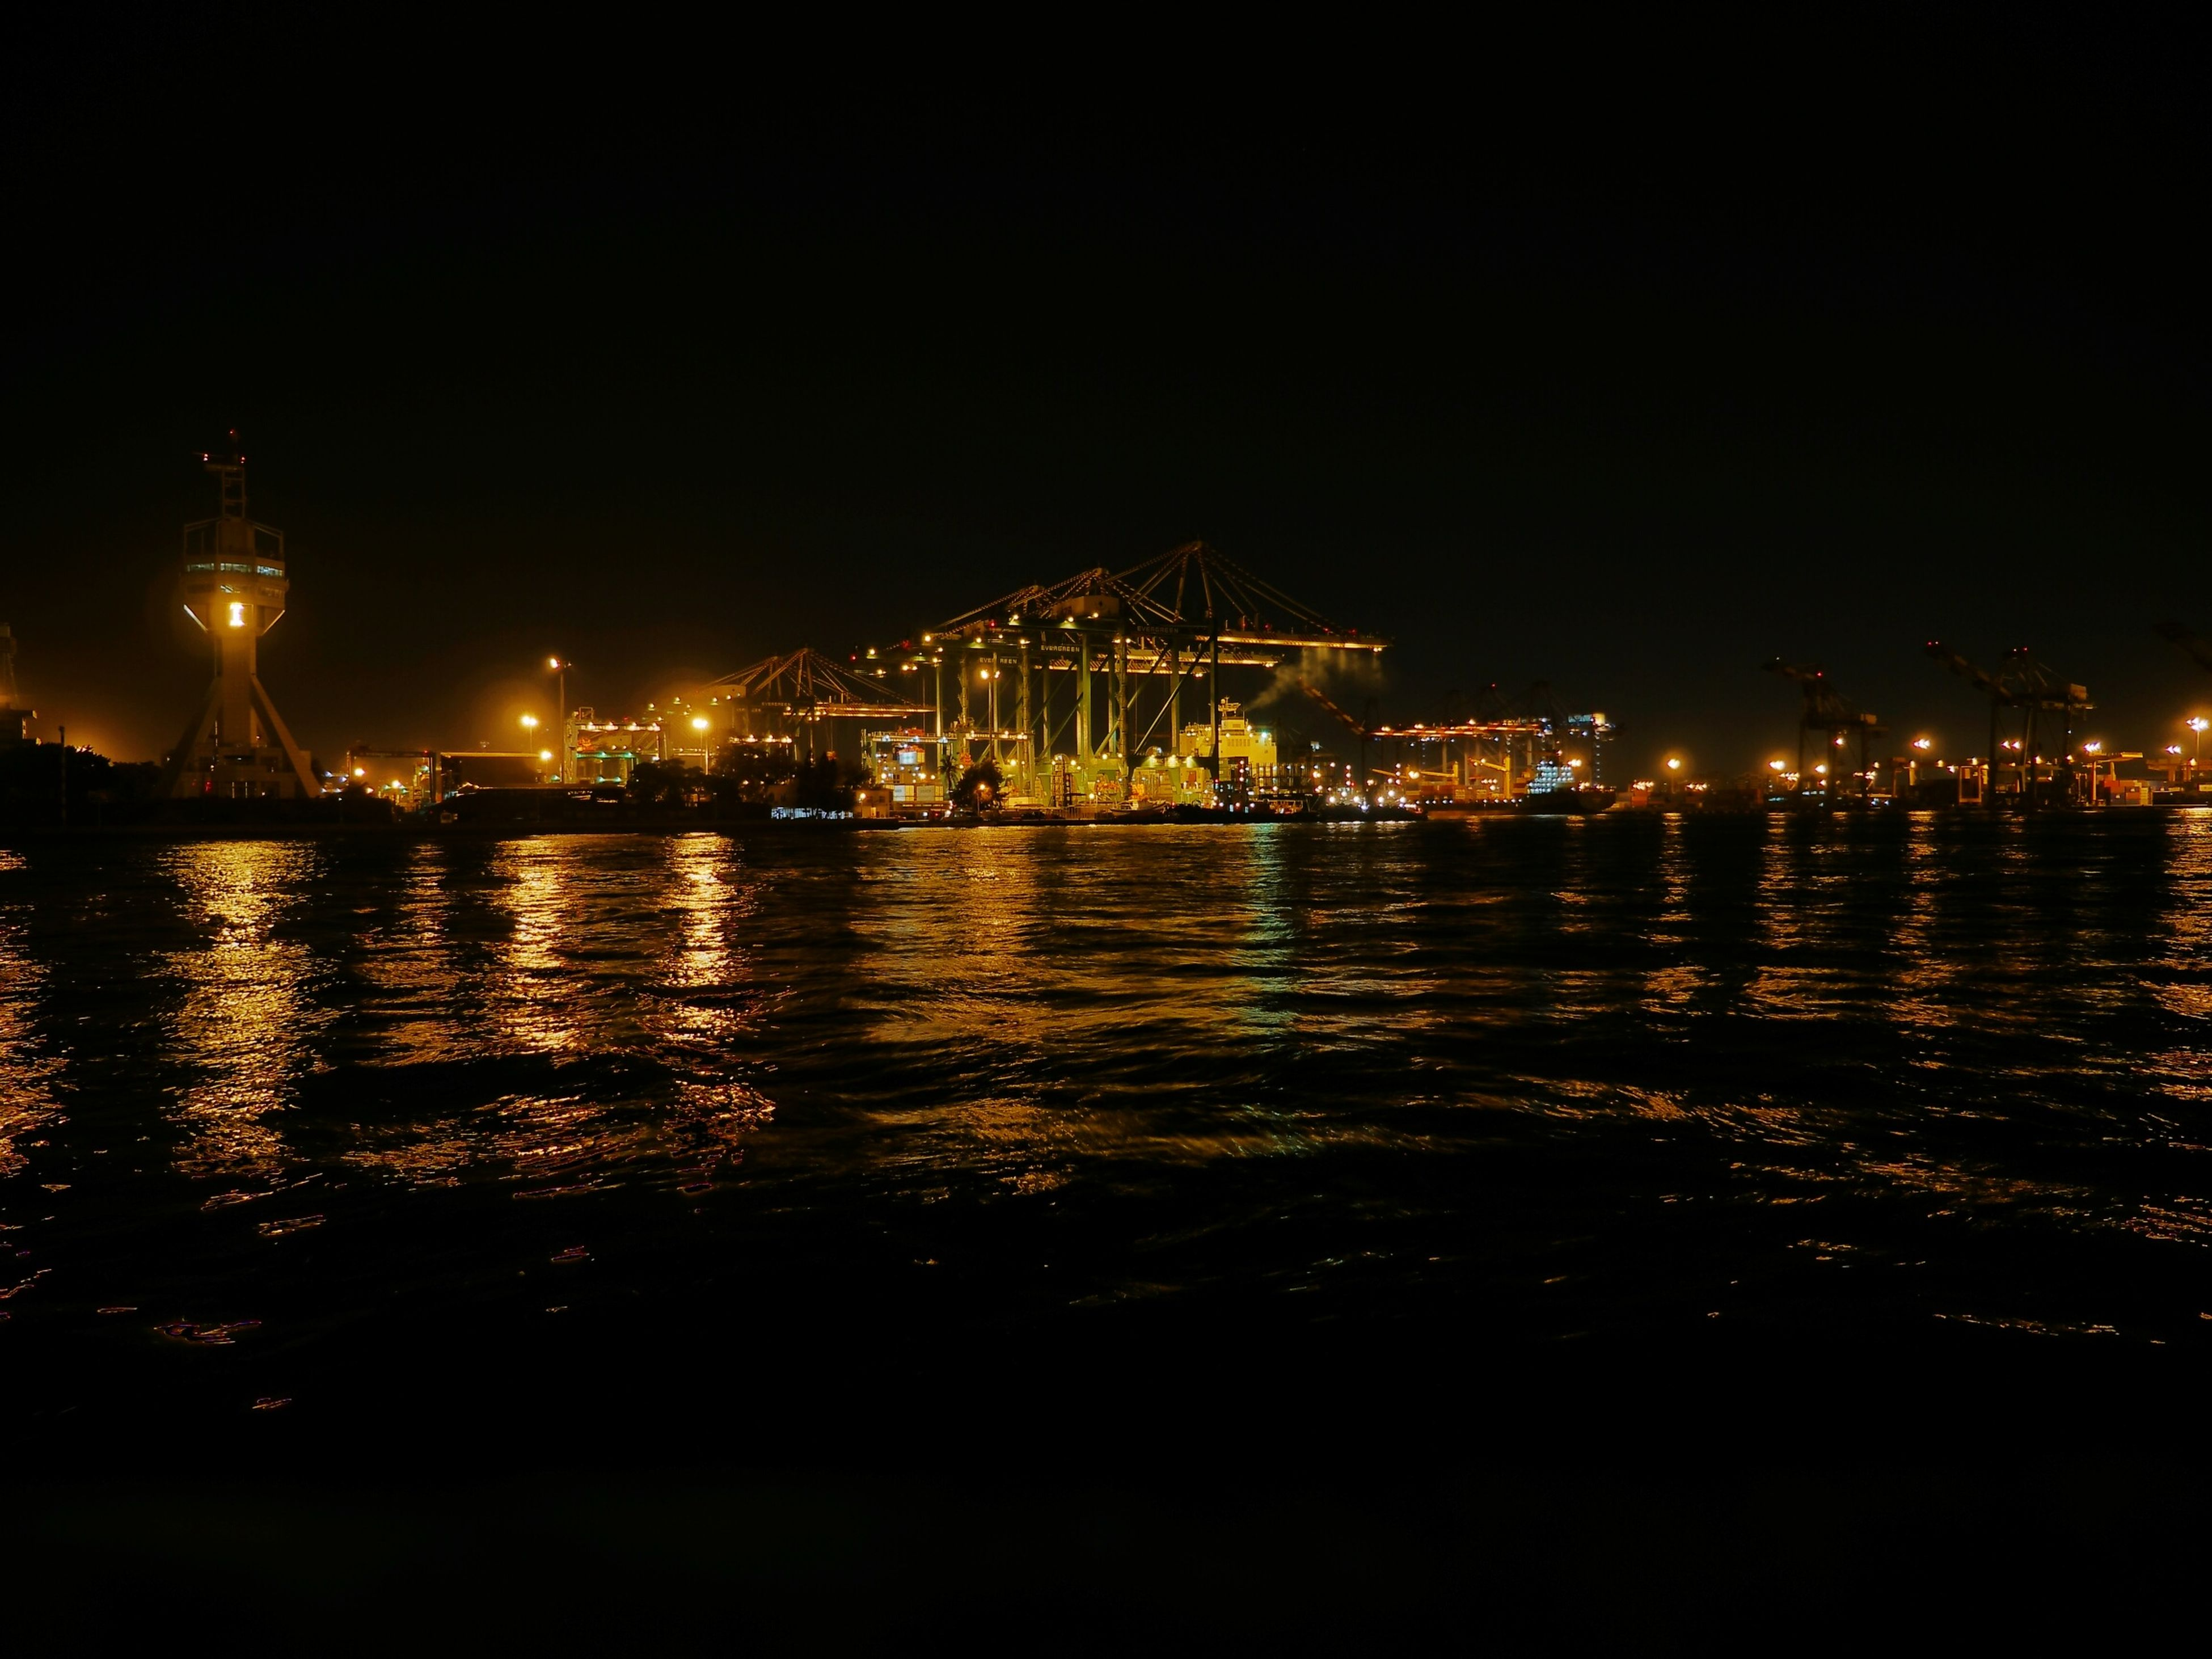 illuminated, night, water, building exterior, city, architecture, built structure, sea, waterfront, cityscape, river, reflection, copy space, nautical vessel, clear sky, sky, harbor, lighting equipment, city life, transportation